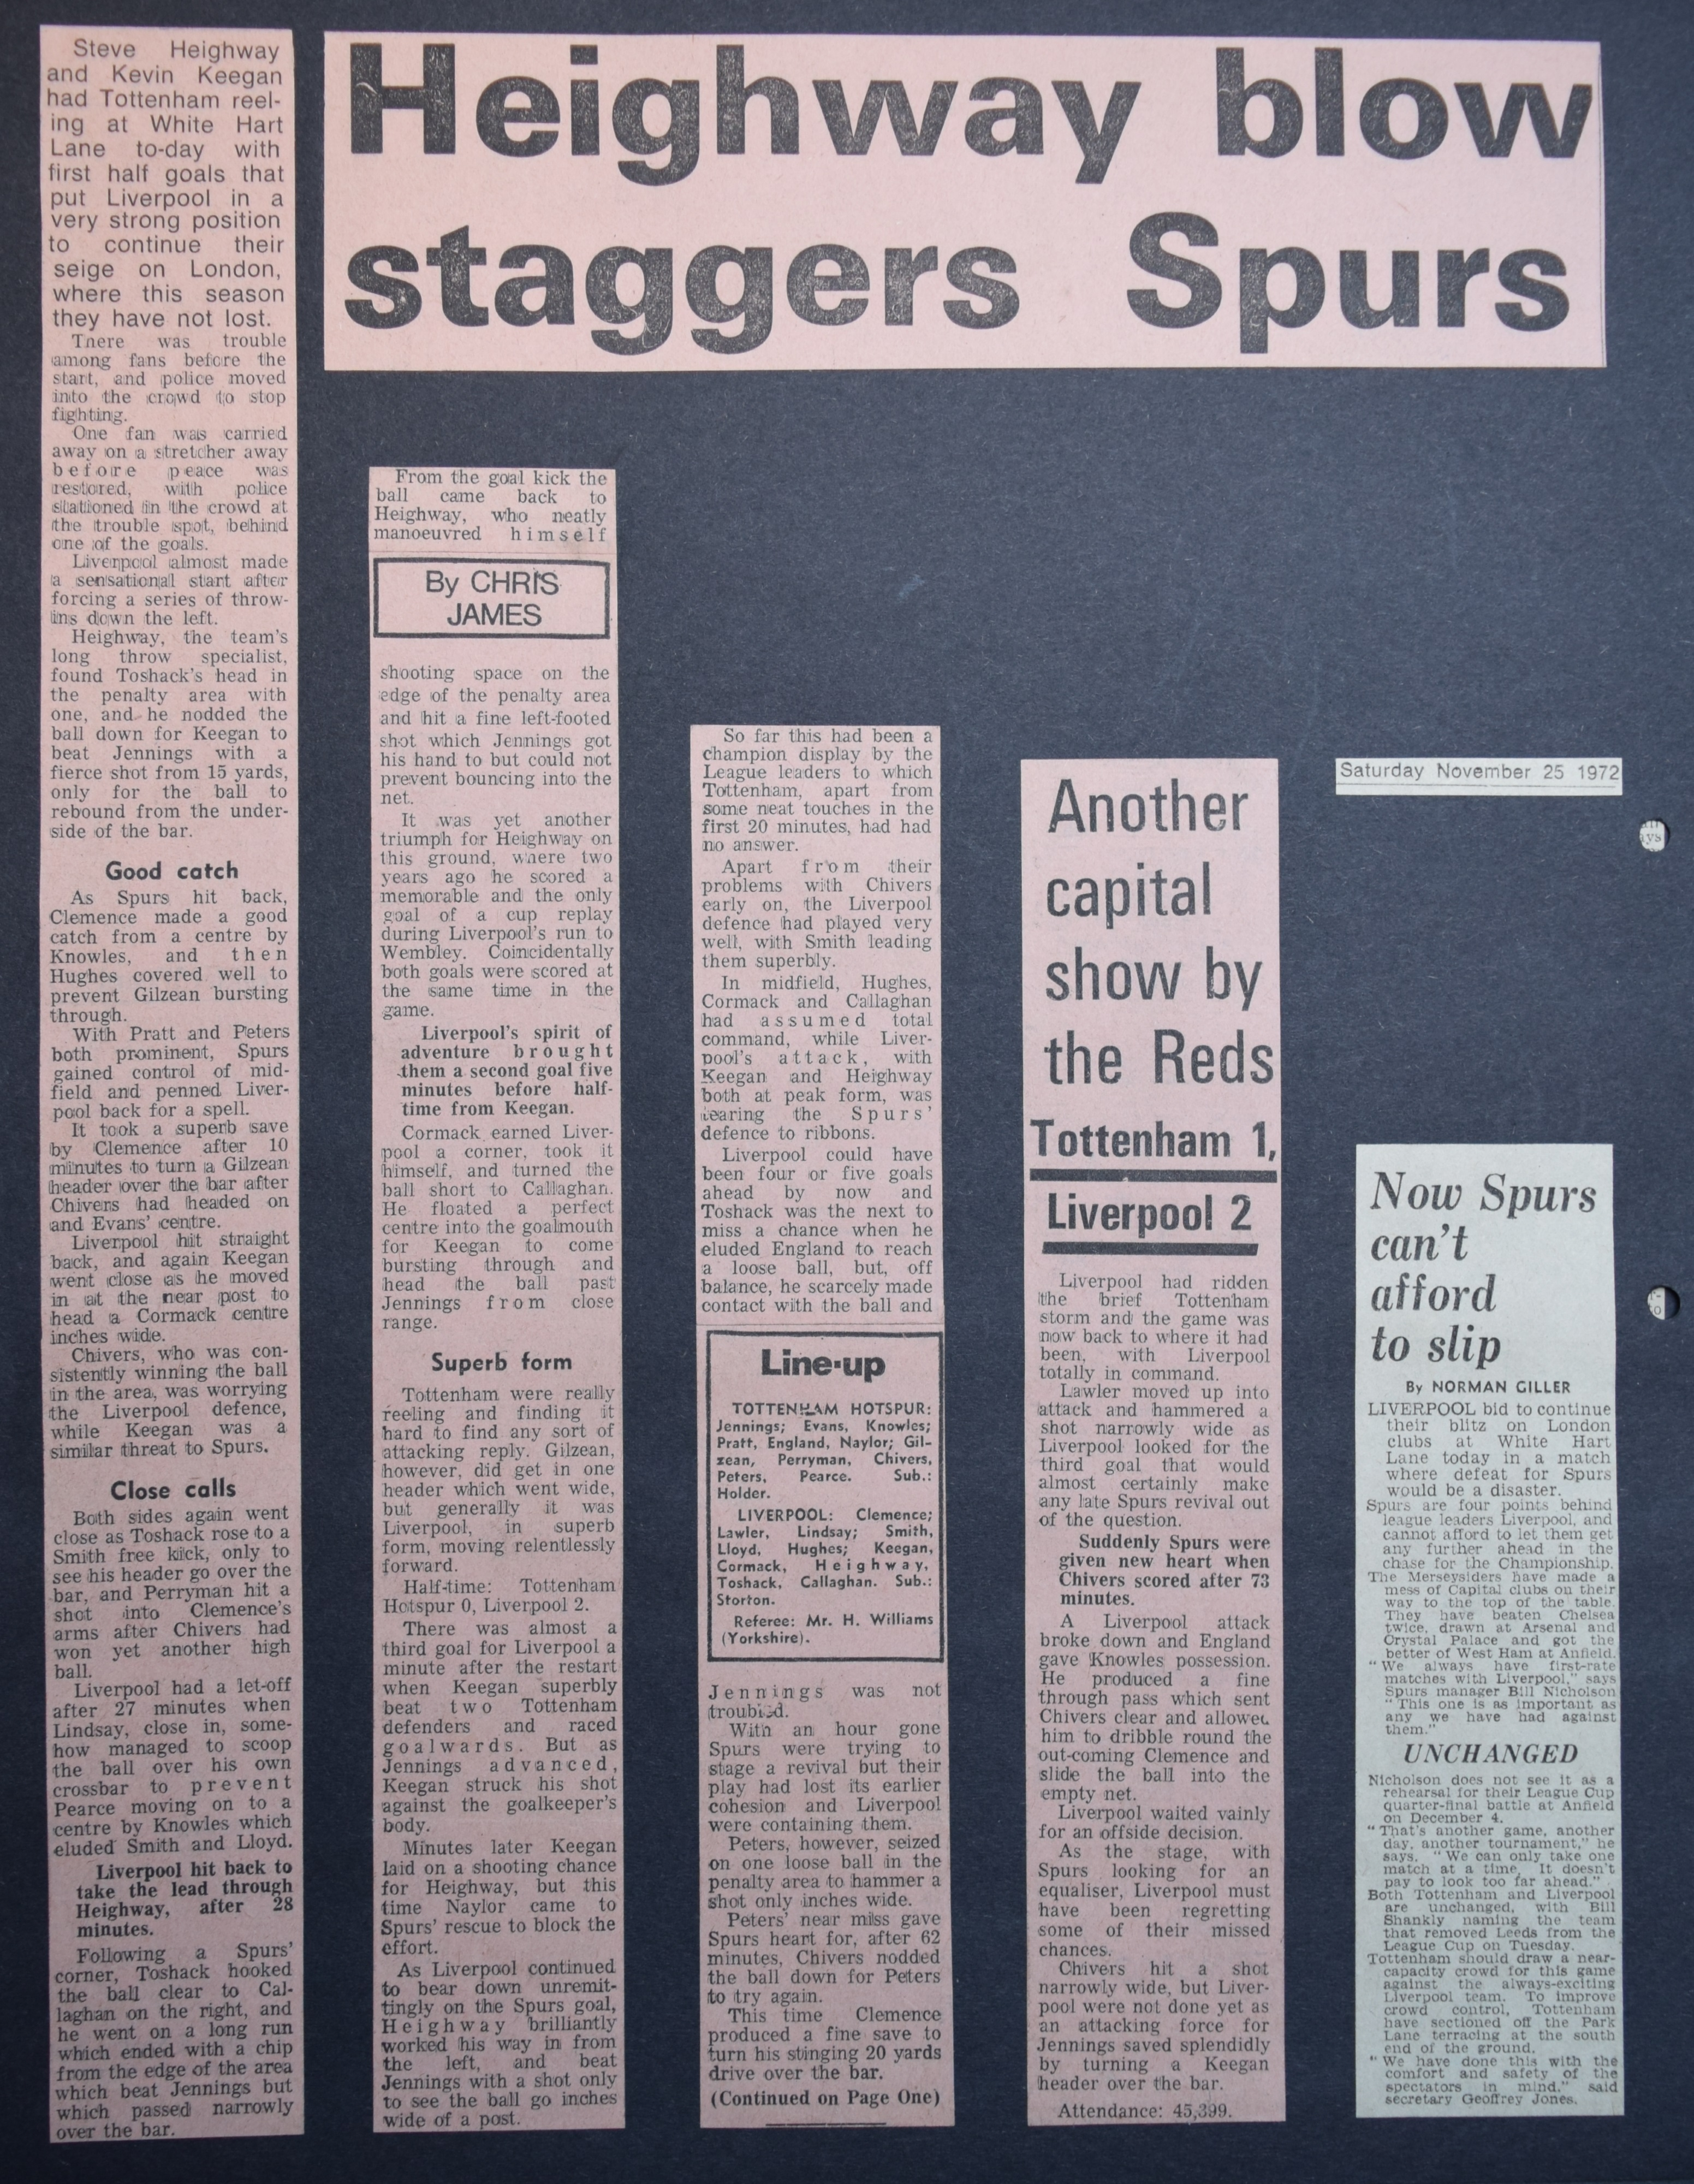 Heighway blow staggers Spurs - 25 November 1972